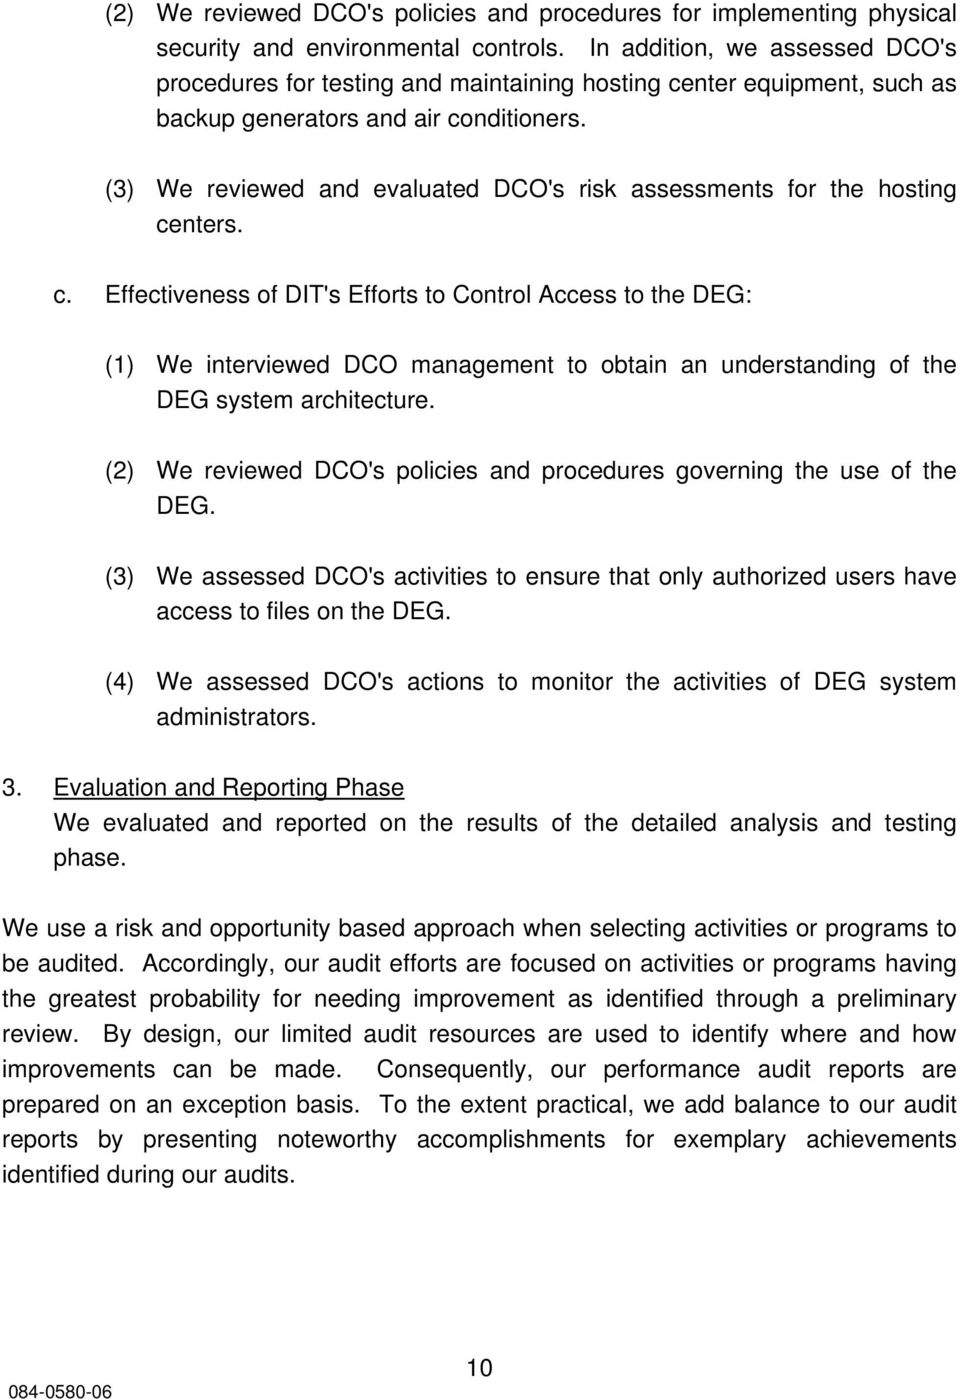 (3) We reviewed and evaluated DCO's risk assessments for the hosting ce